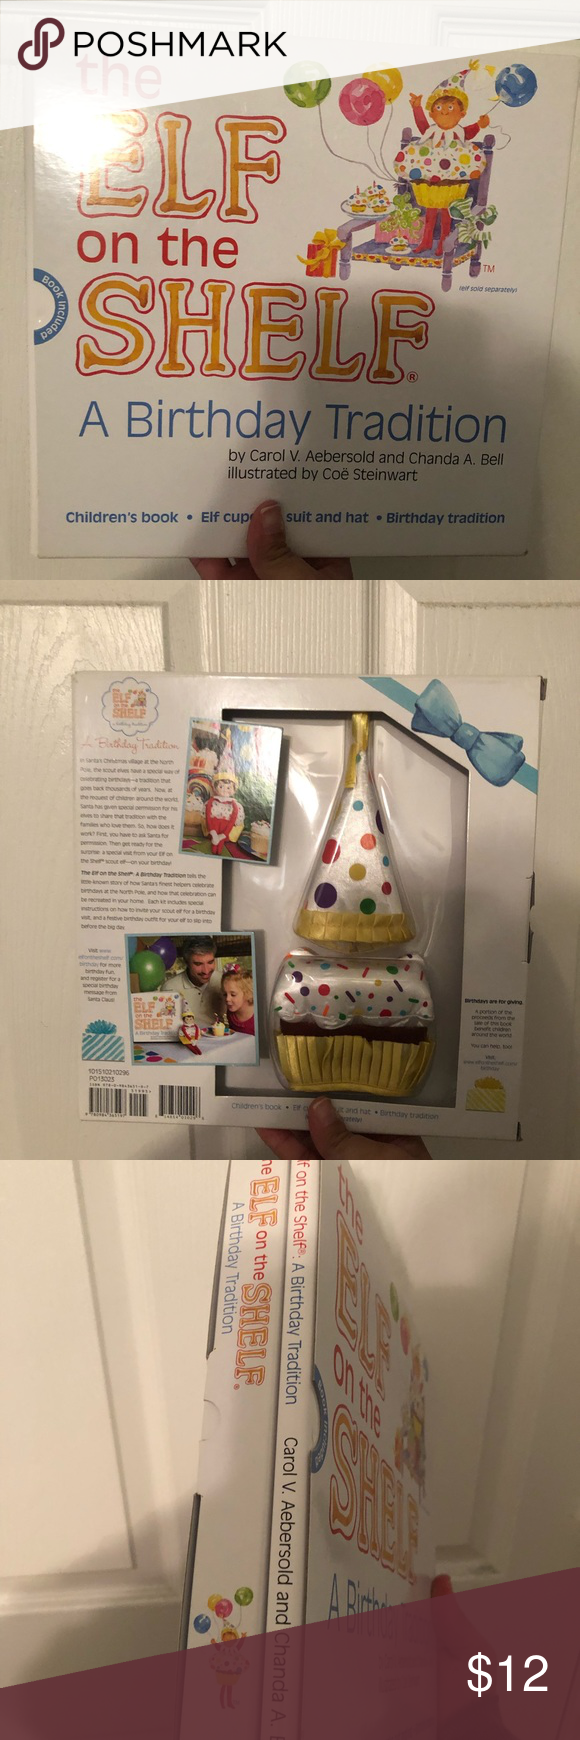 Elf on the Shelf Birthday set New in box. Comes with children's book and elf c...,  #Birthday...